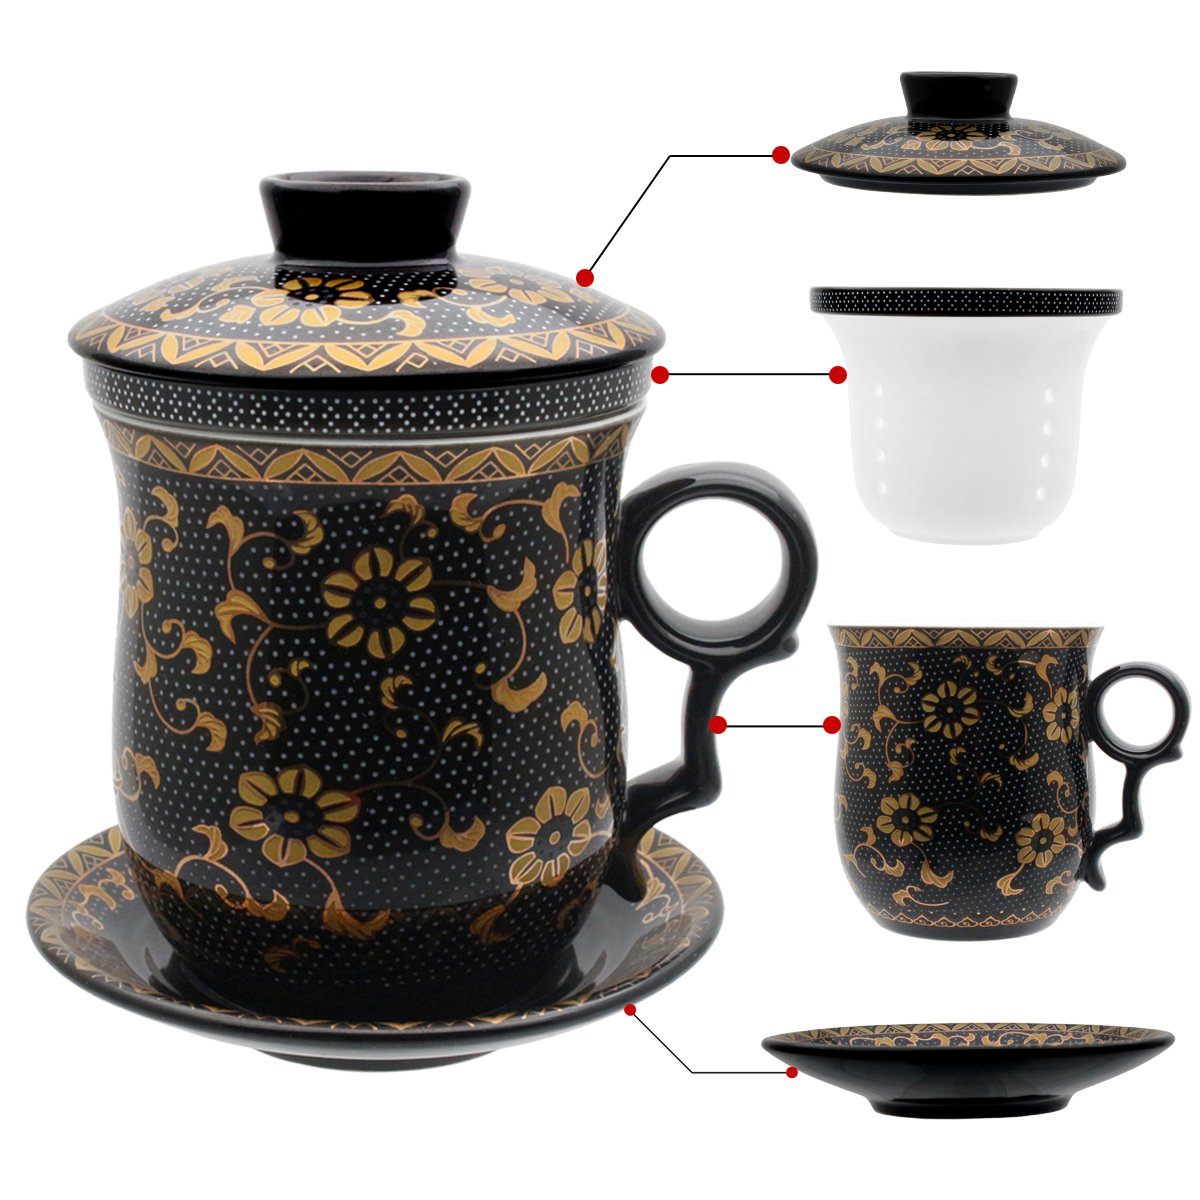 tasse th hollihi avec couvercle soucoupe filtre en porcelaine chinoise de jingdezhen. Black Bedroom Furniture Sets. Home Design Ideas